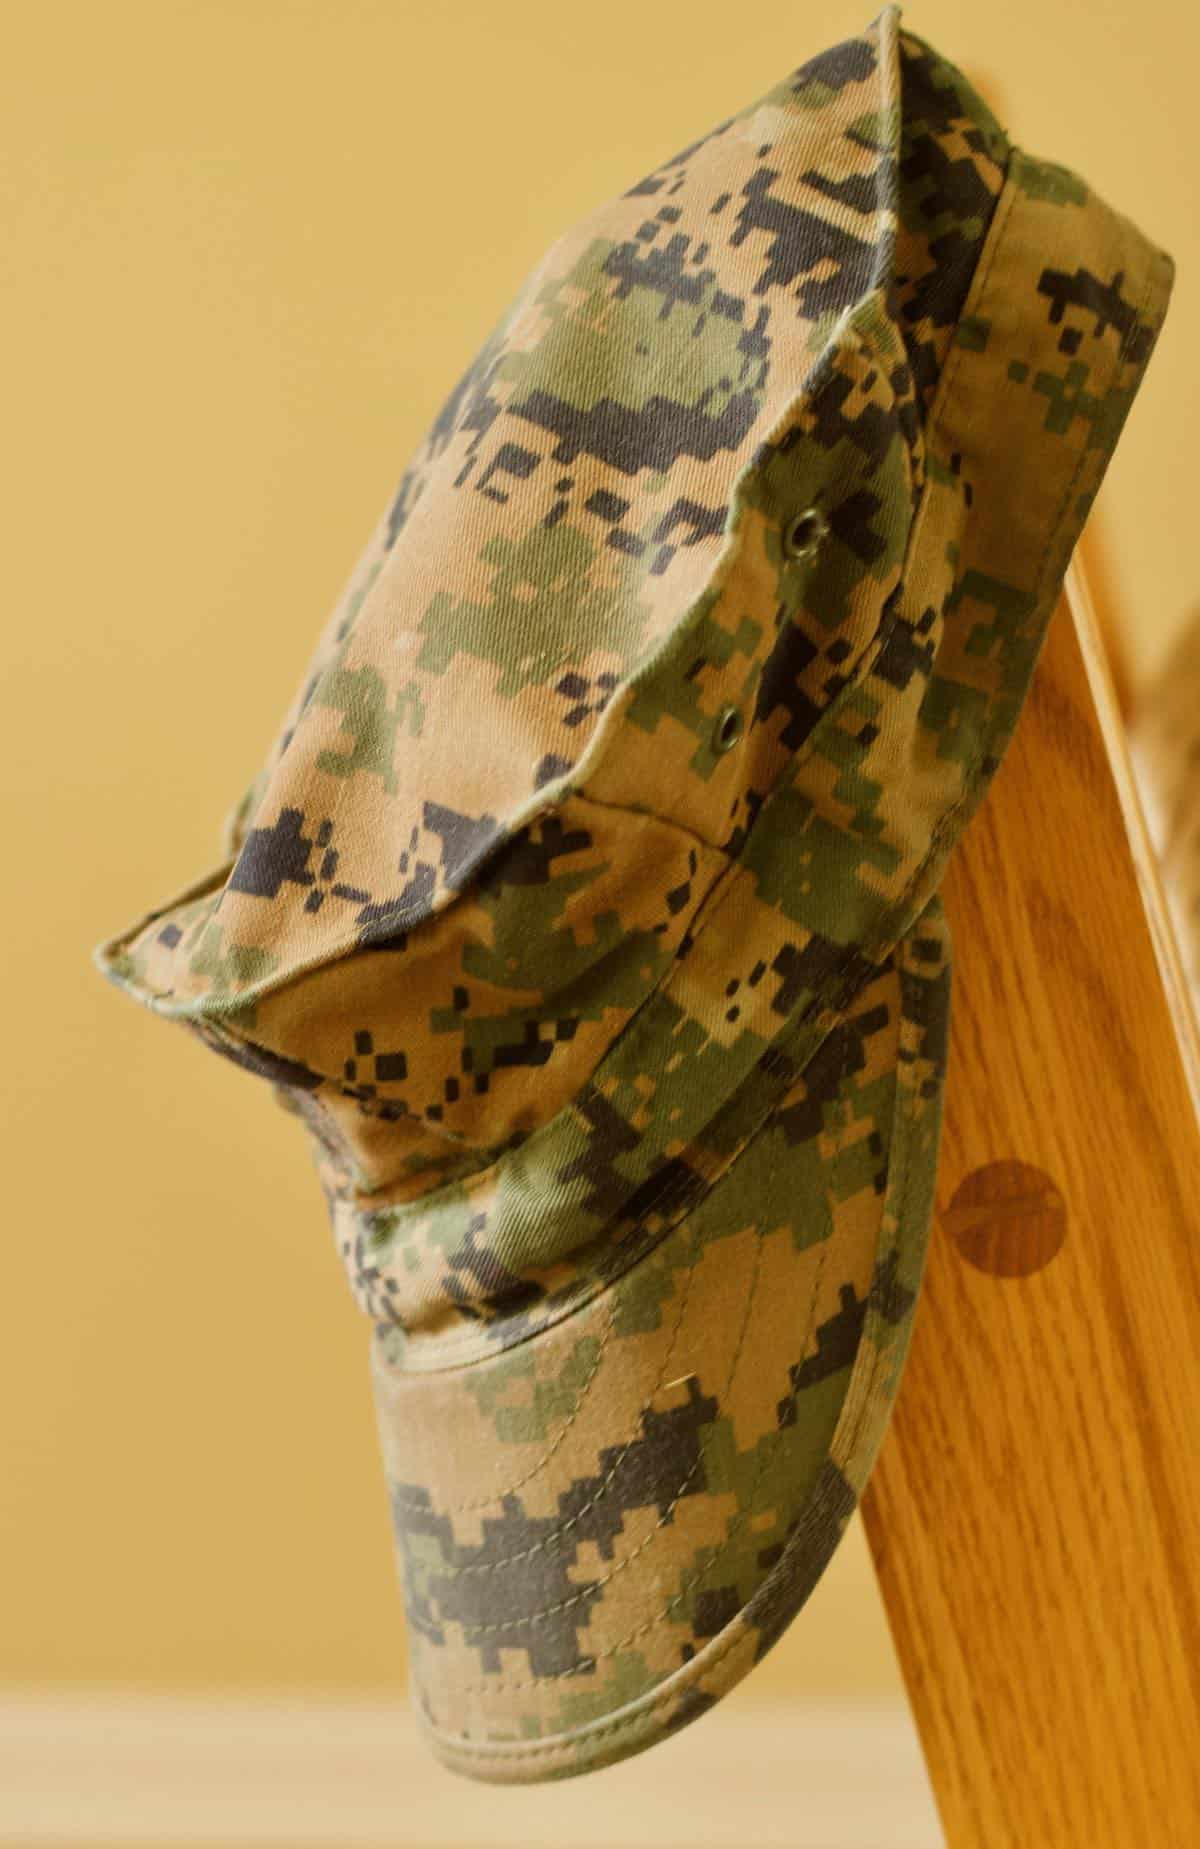 he wore many hats like this camouflage cap